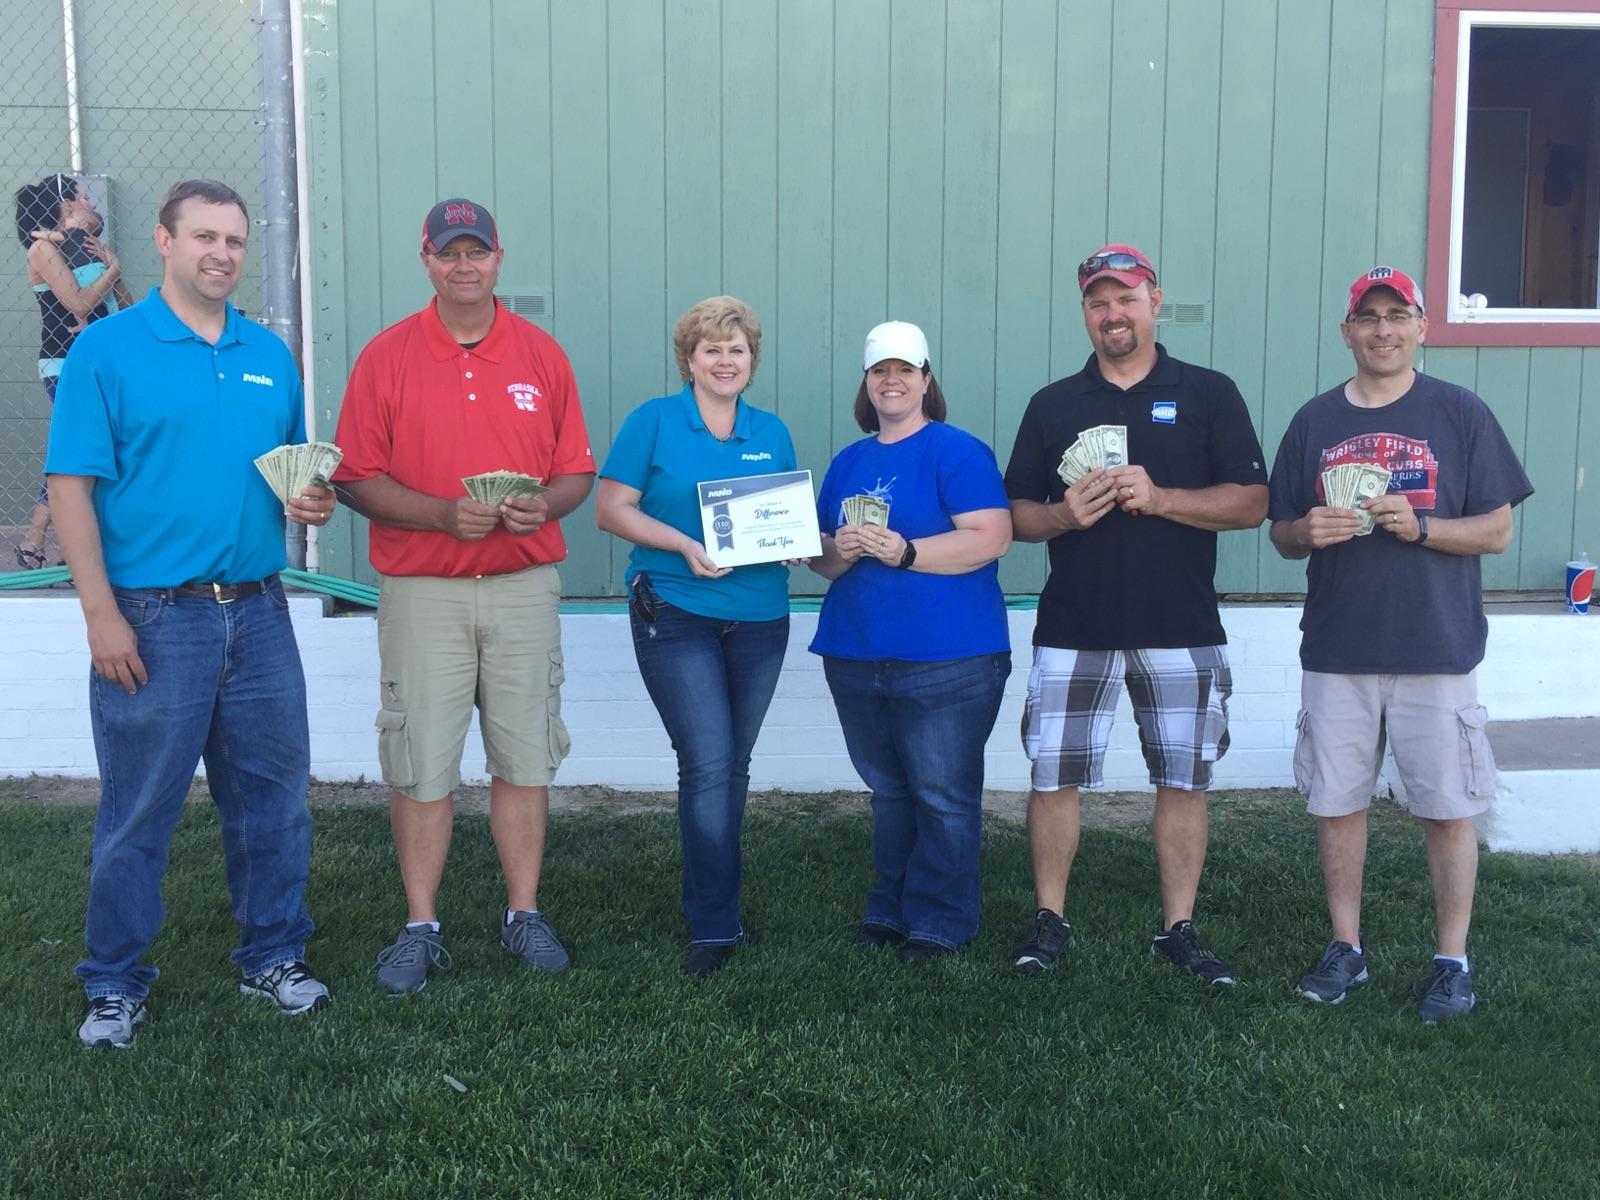 MNB Presents $110 Donation to McCook Midget Baseball